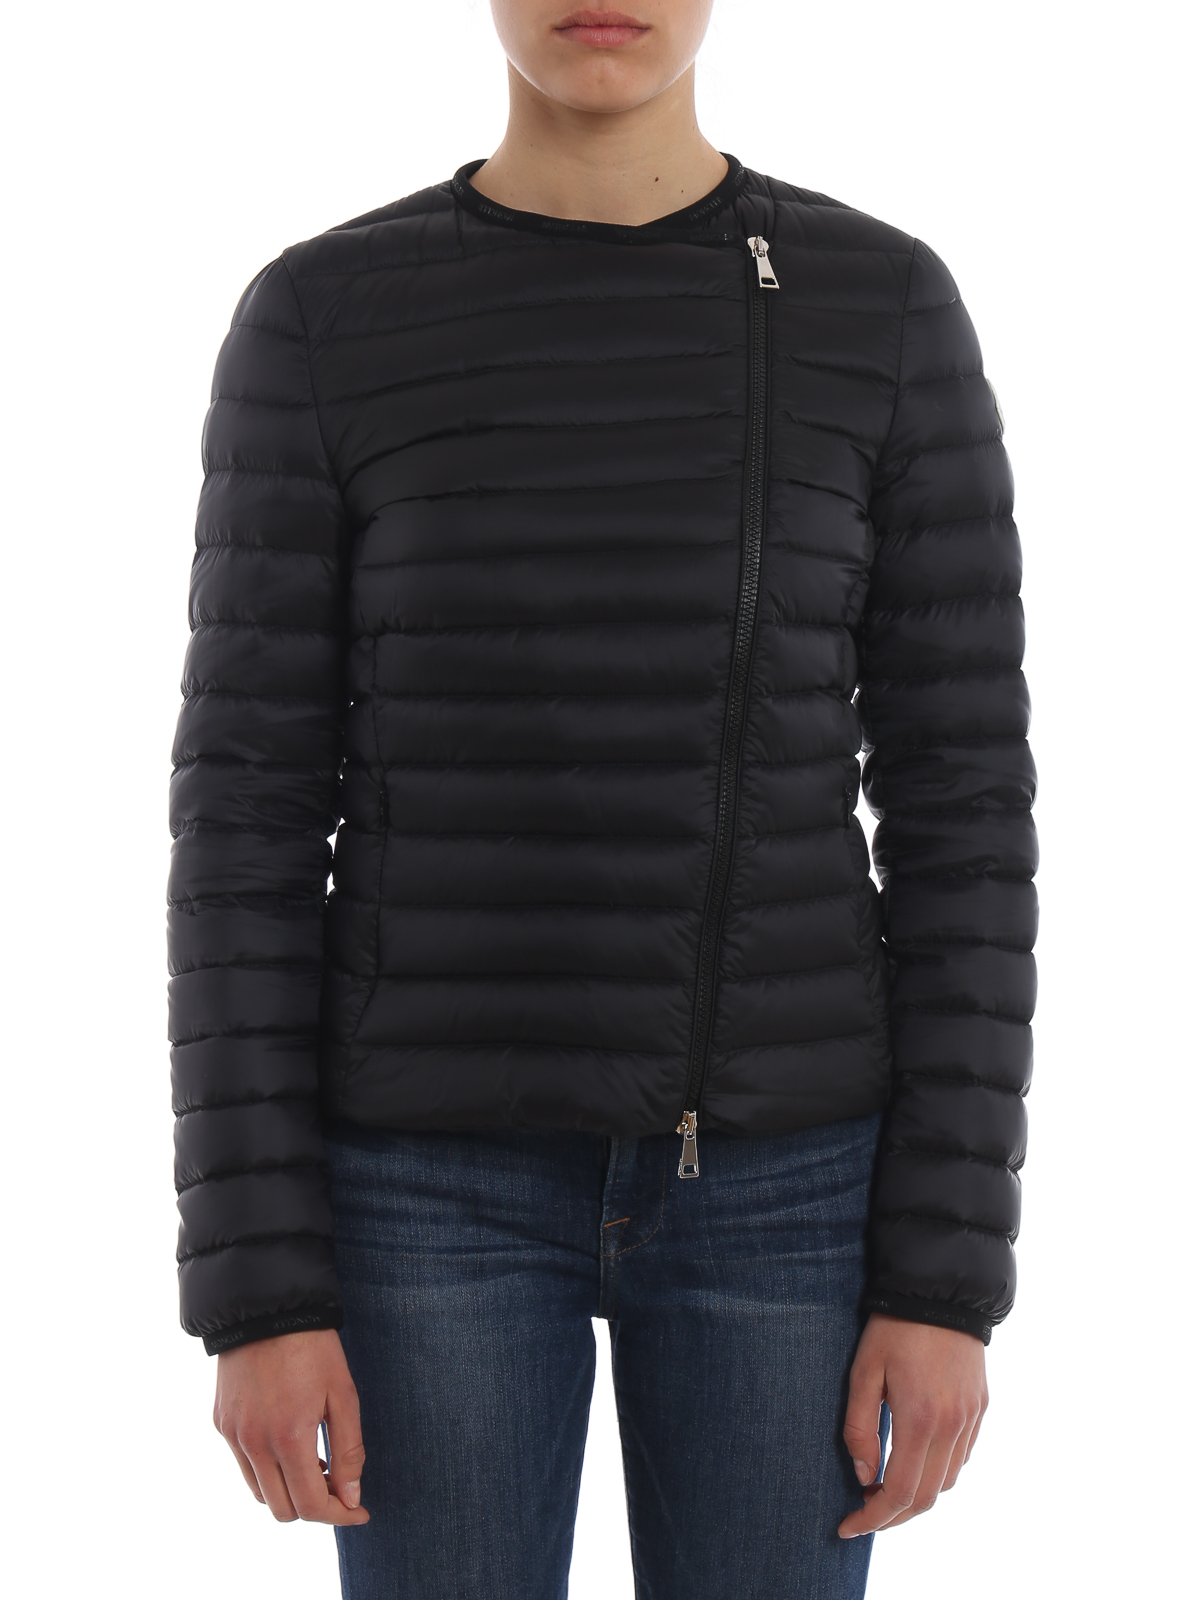 4342f1a3e Moncler - Londres collarless black puffer jacket - padded jackets ...